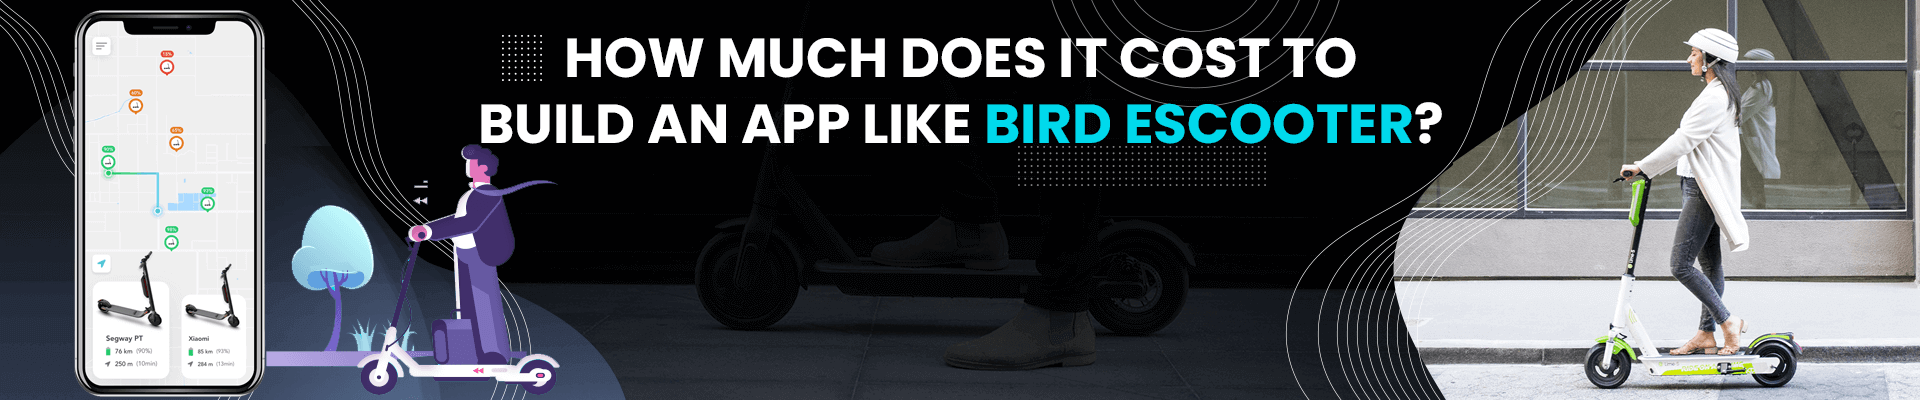 How Much Does It Cost To Develop A Bird EScooter Like App in 2021?